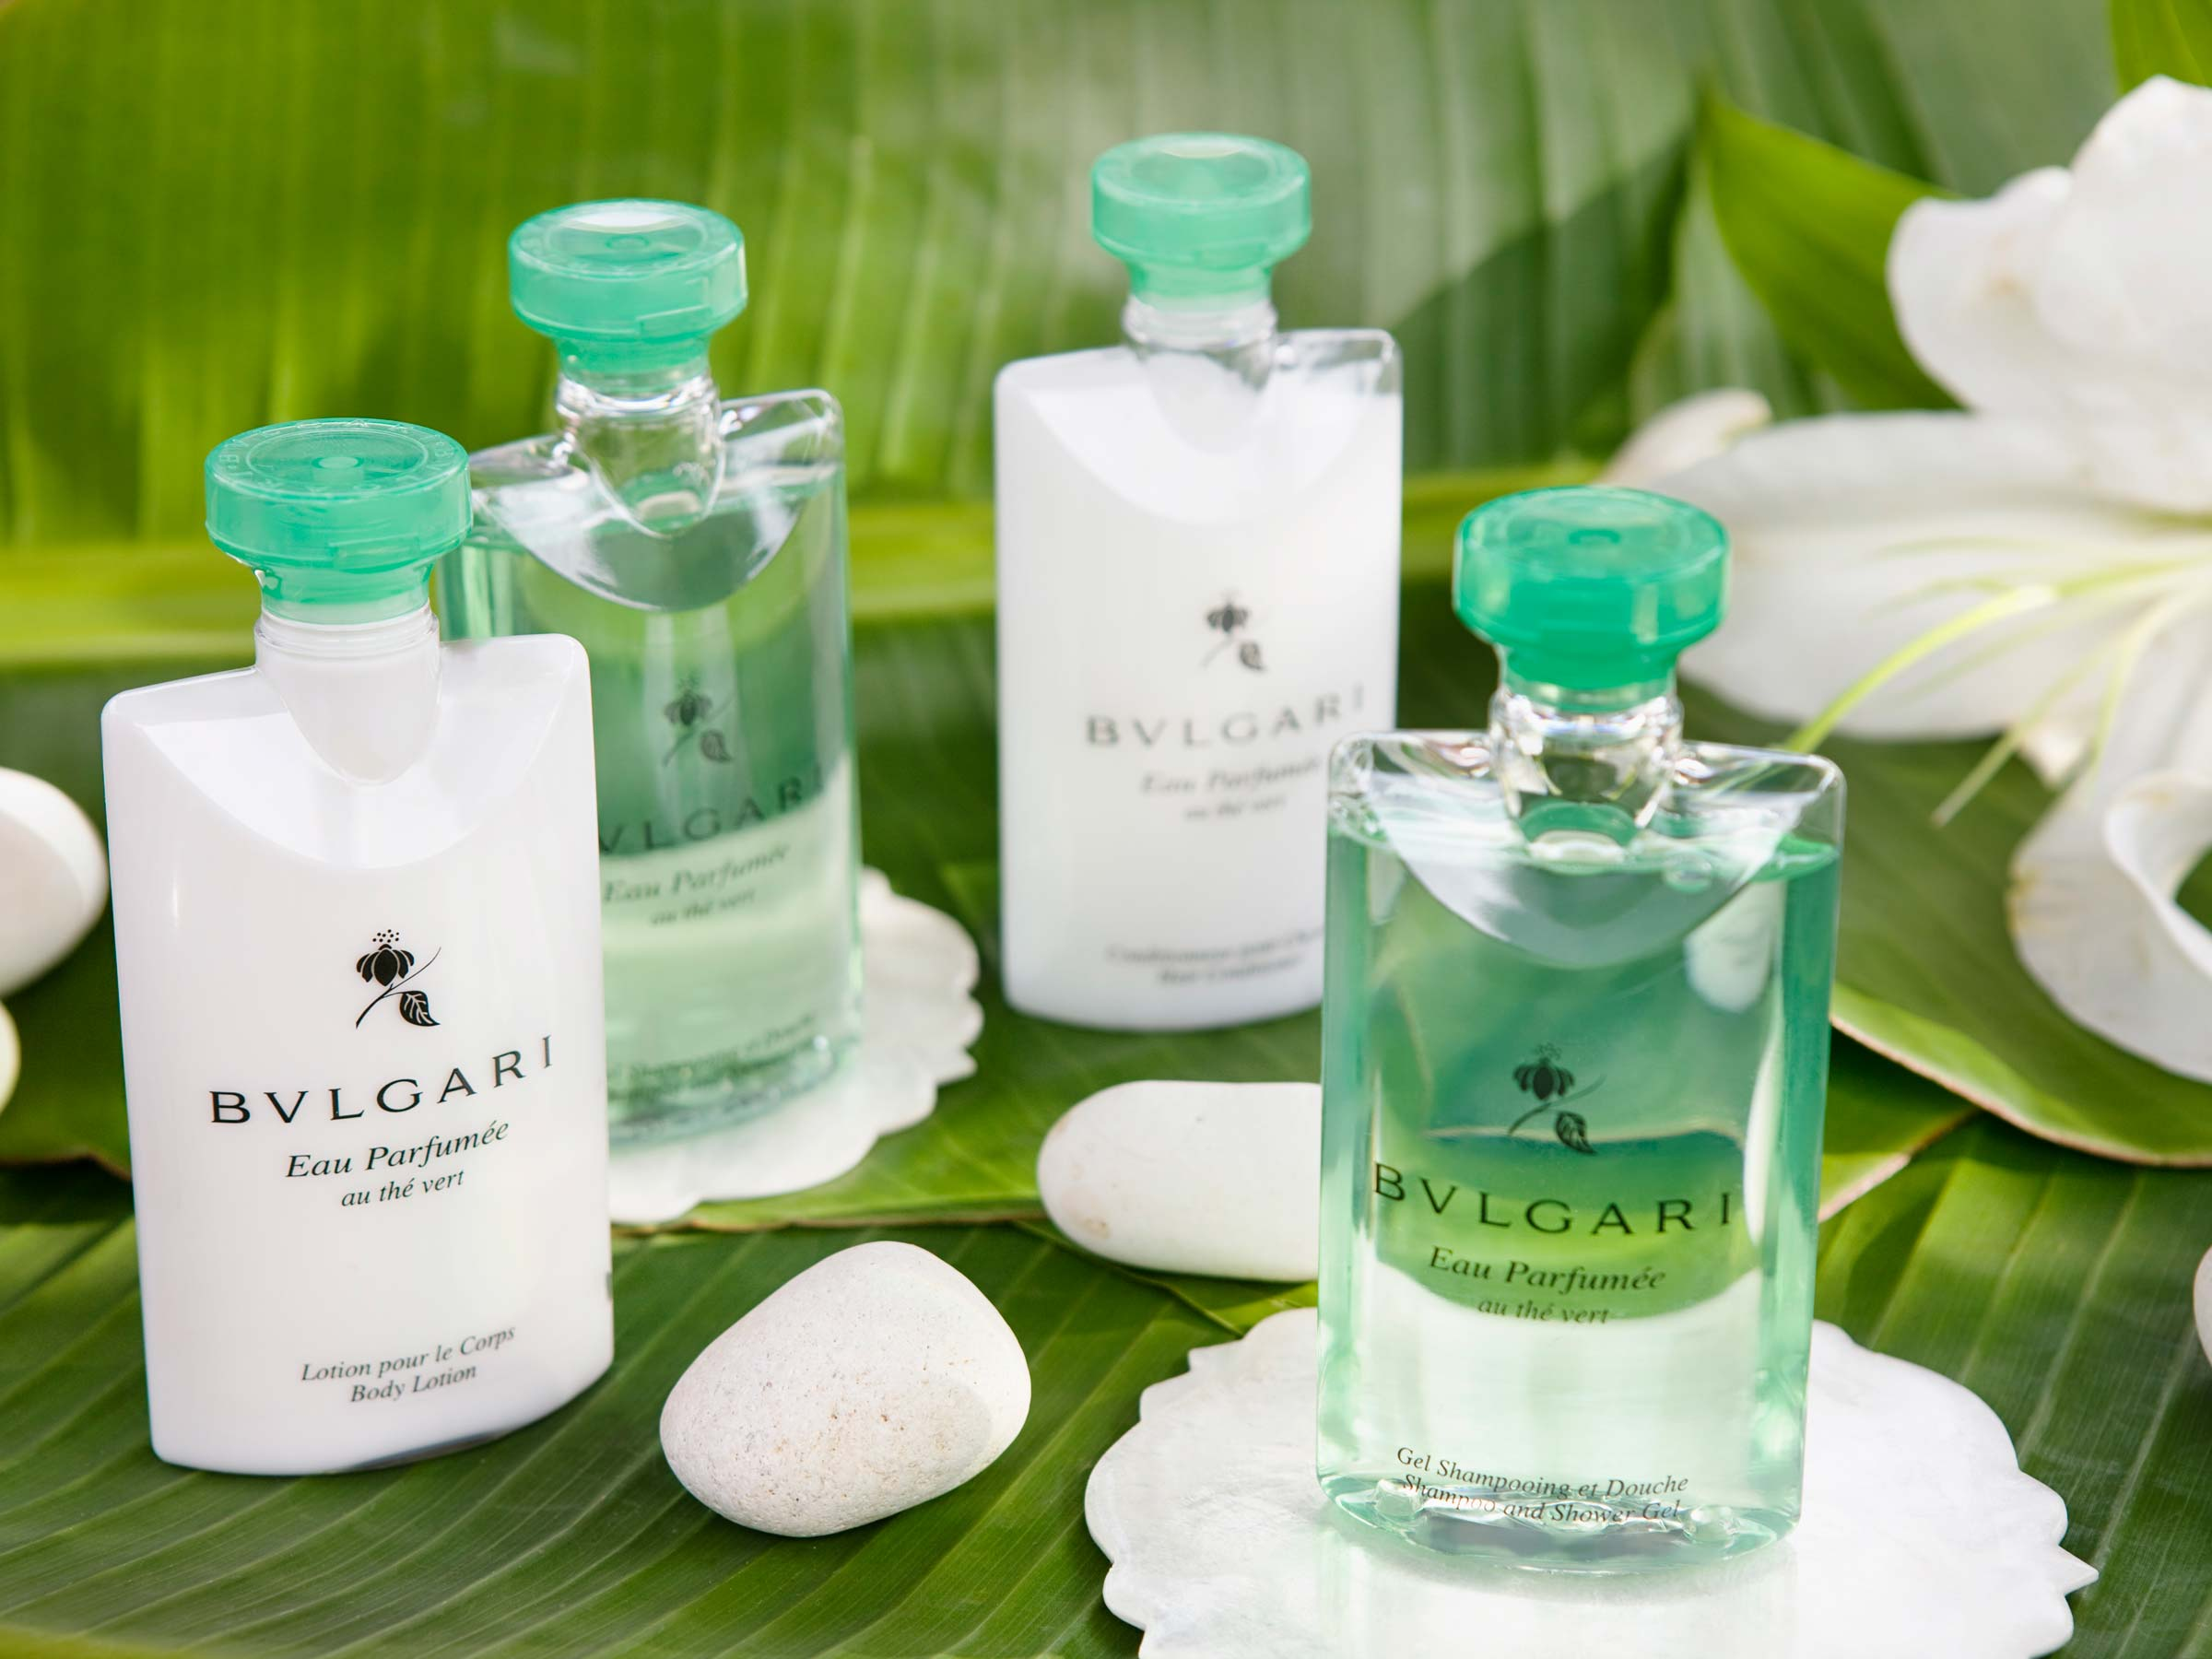 Bvlgari Bathroom Amenities